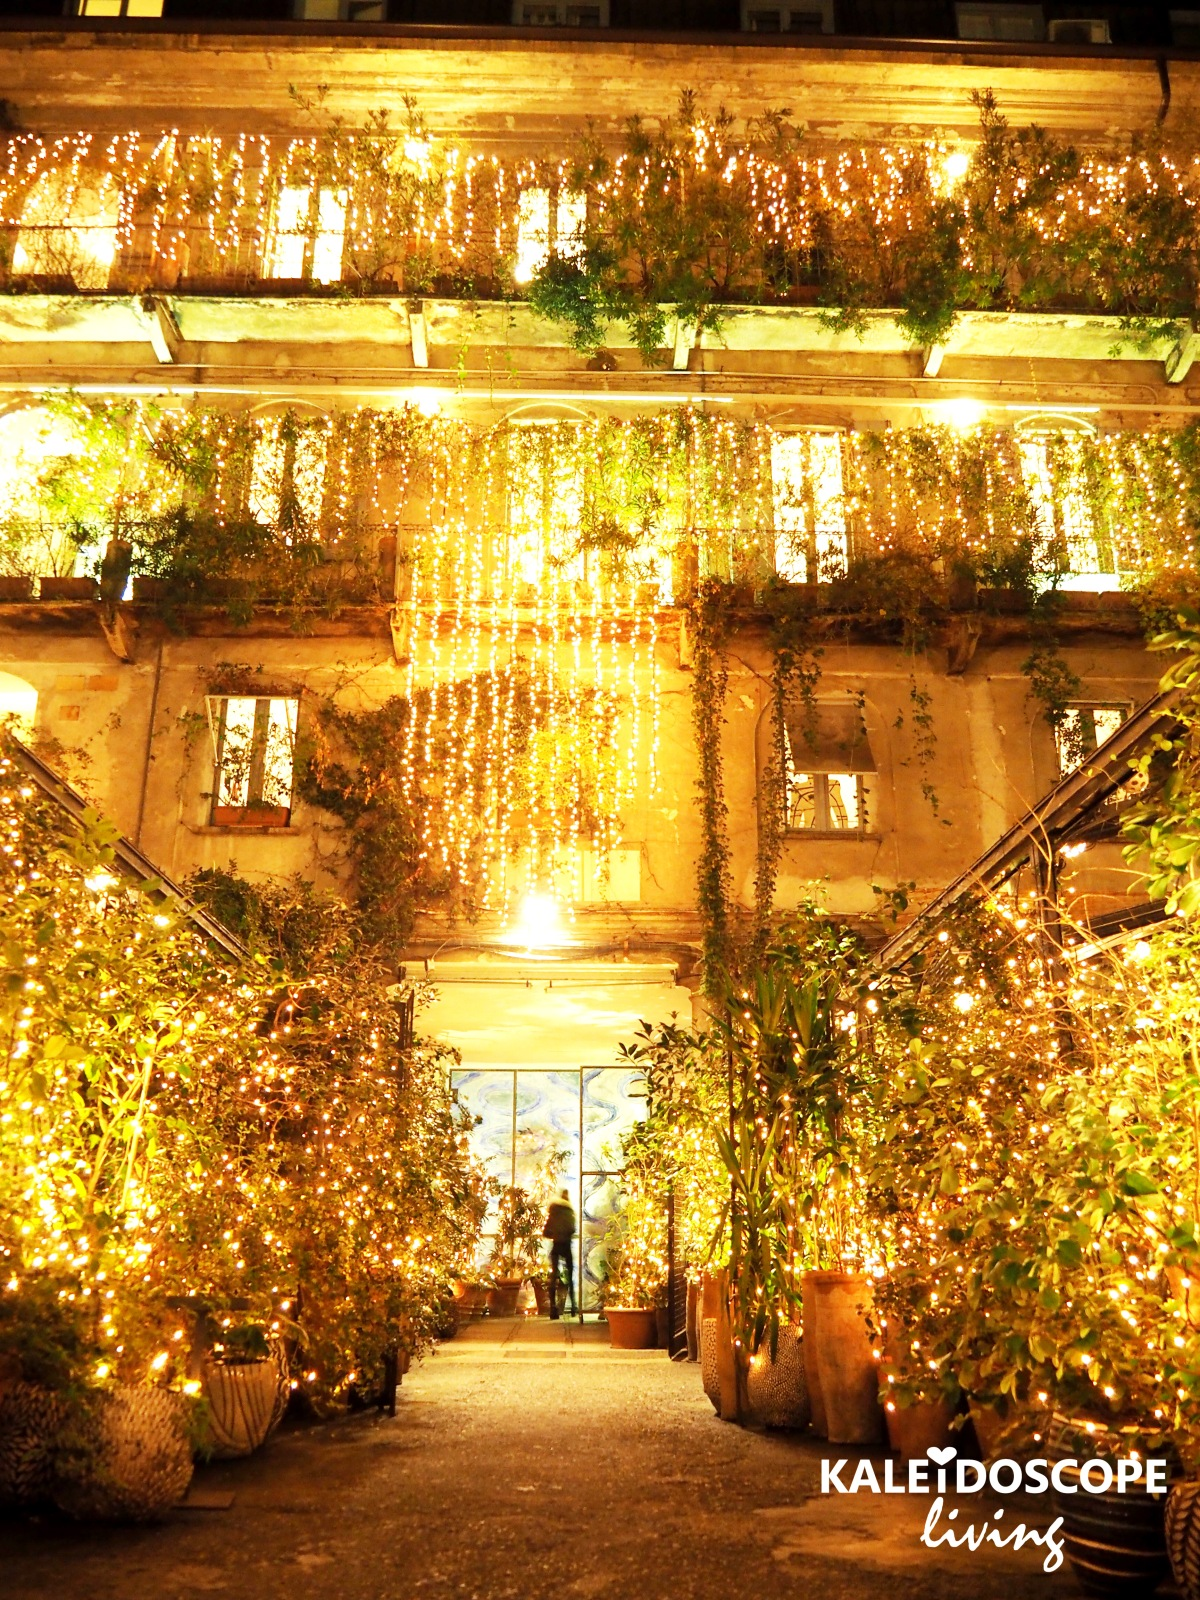 Travel Italy Milan Secret Garden Art Gallery Hotel Restaurant 10 Corso Como 7